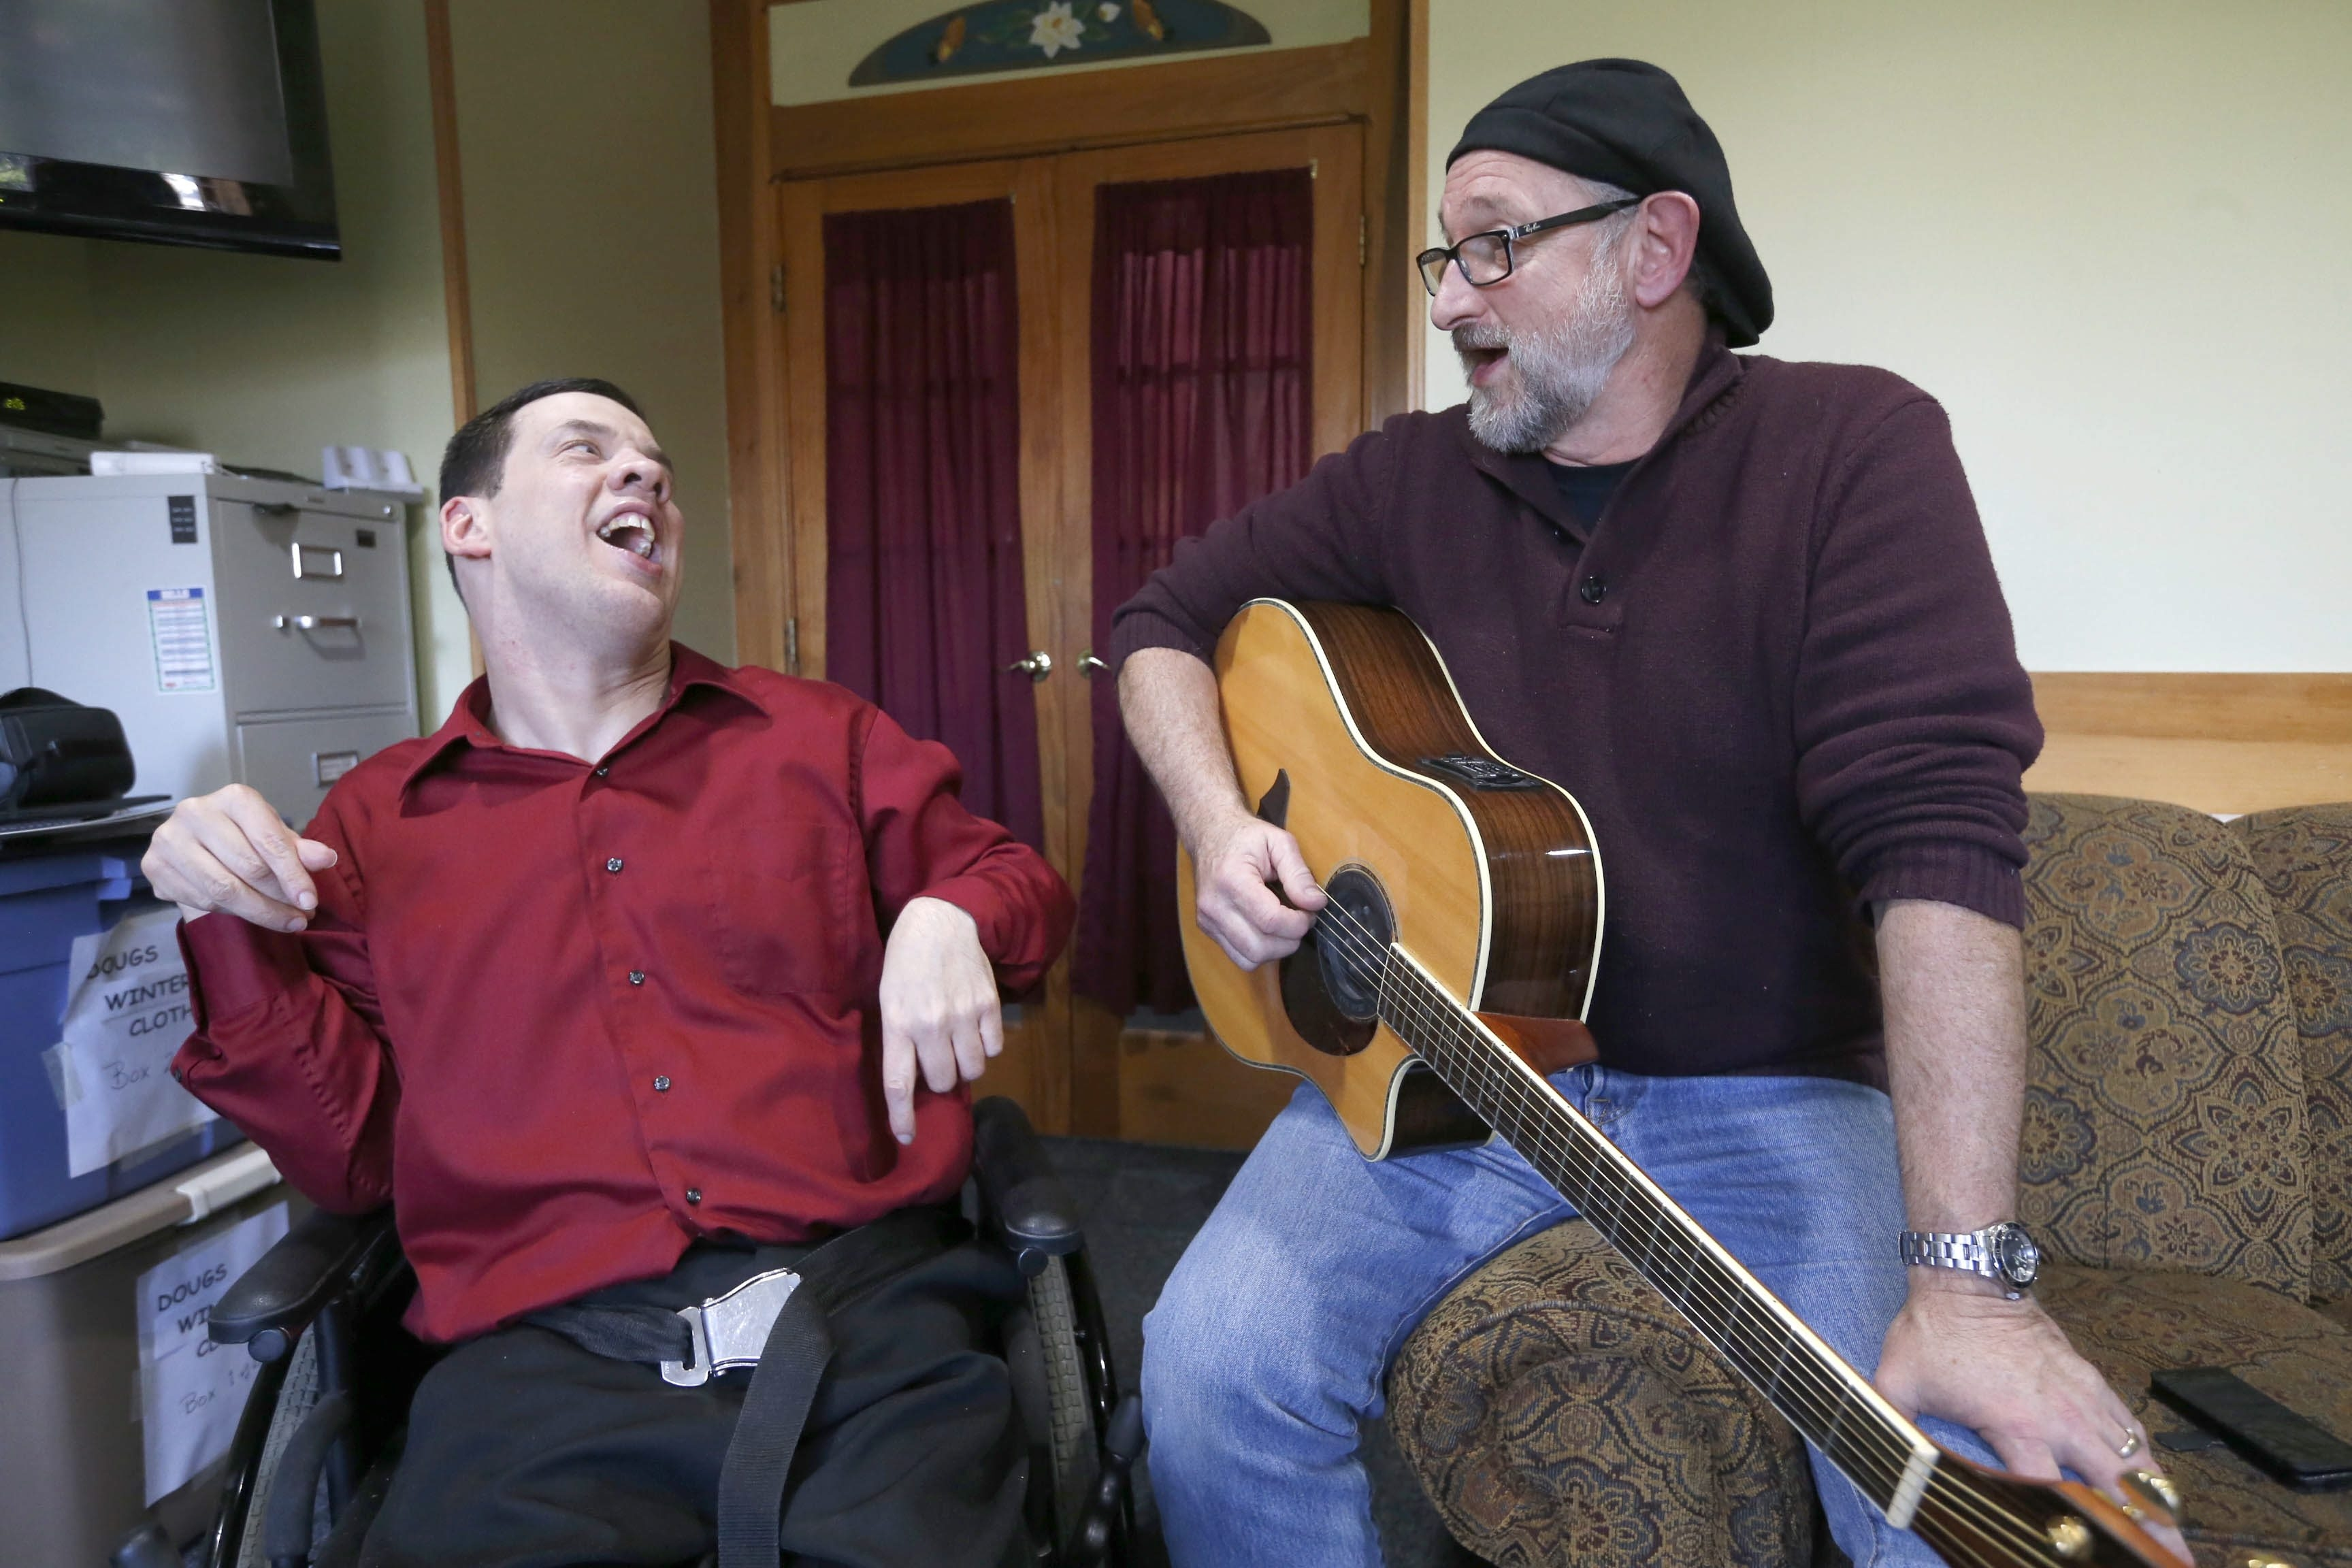 Accompanied by his life coach Gary Spears, right, Jason Smith, 46, left, sings a song he wrote for Stevie Wonder who will be performing Thursday in the First Niagara Center. (Robert Kirkham/Buffalo News)